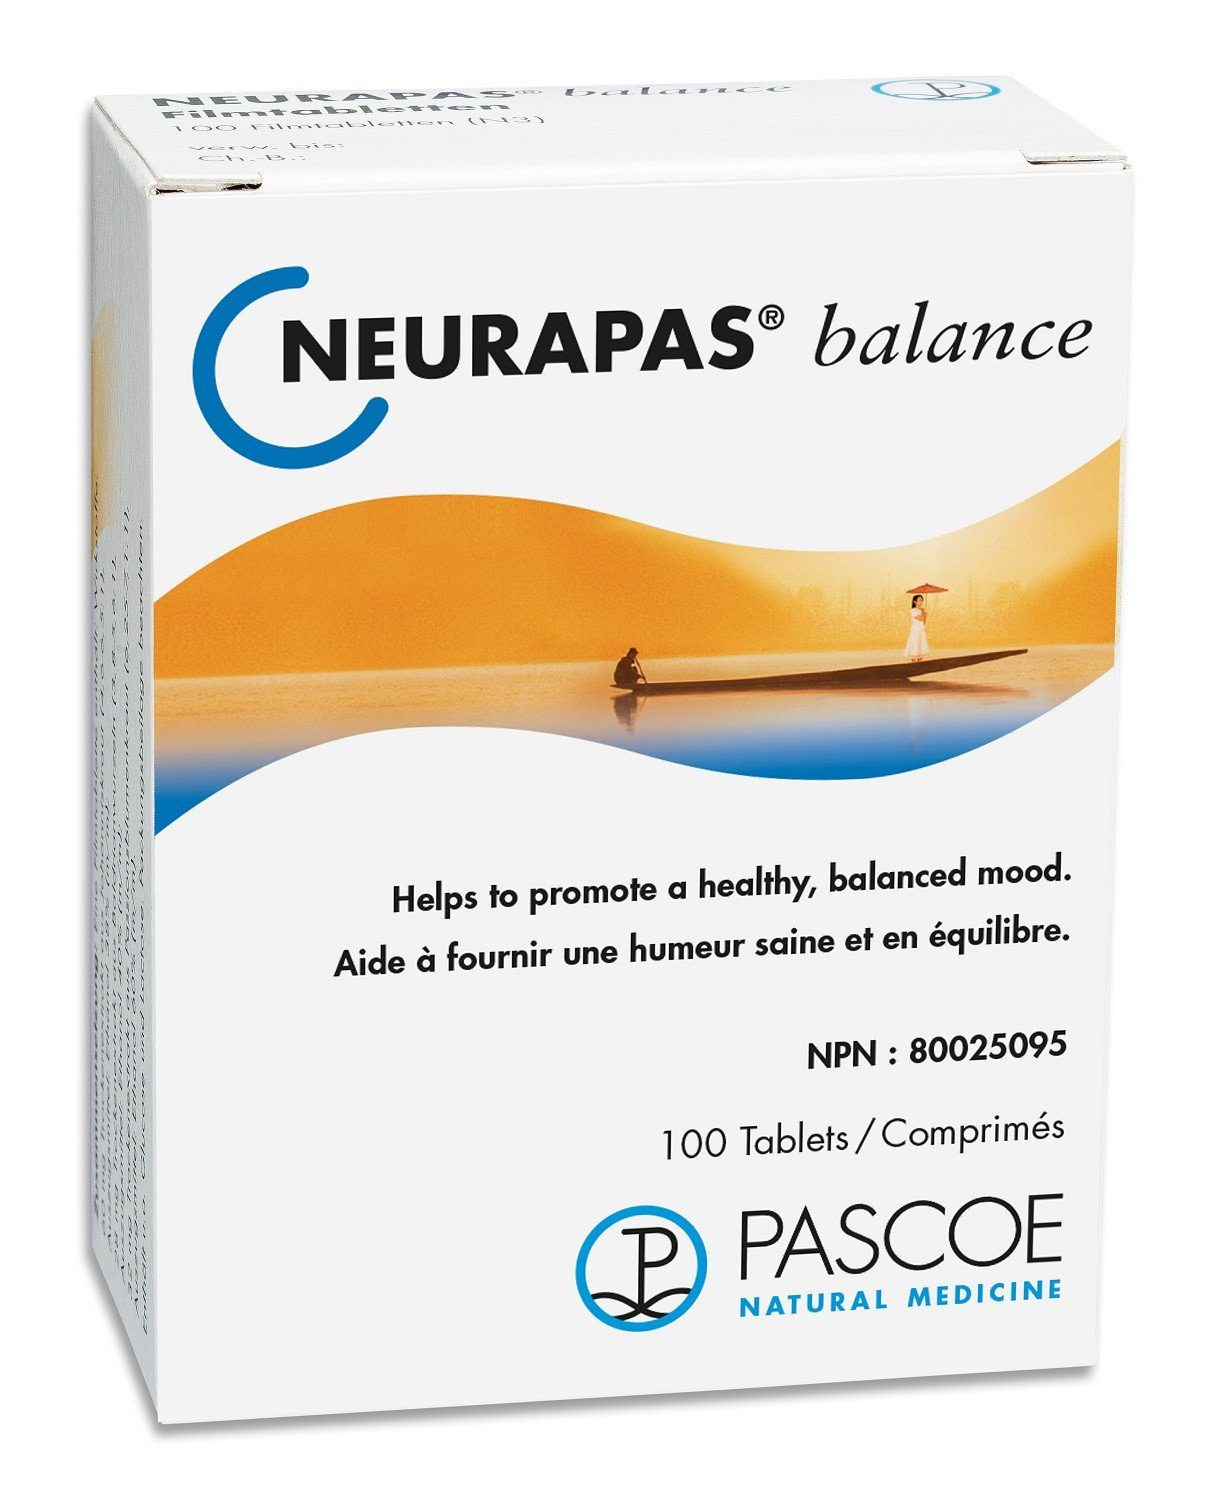 Supplements & Vitamins - Pascoe - Neurapas, 100 Tabs